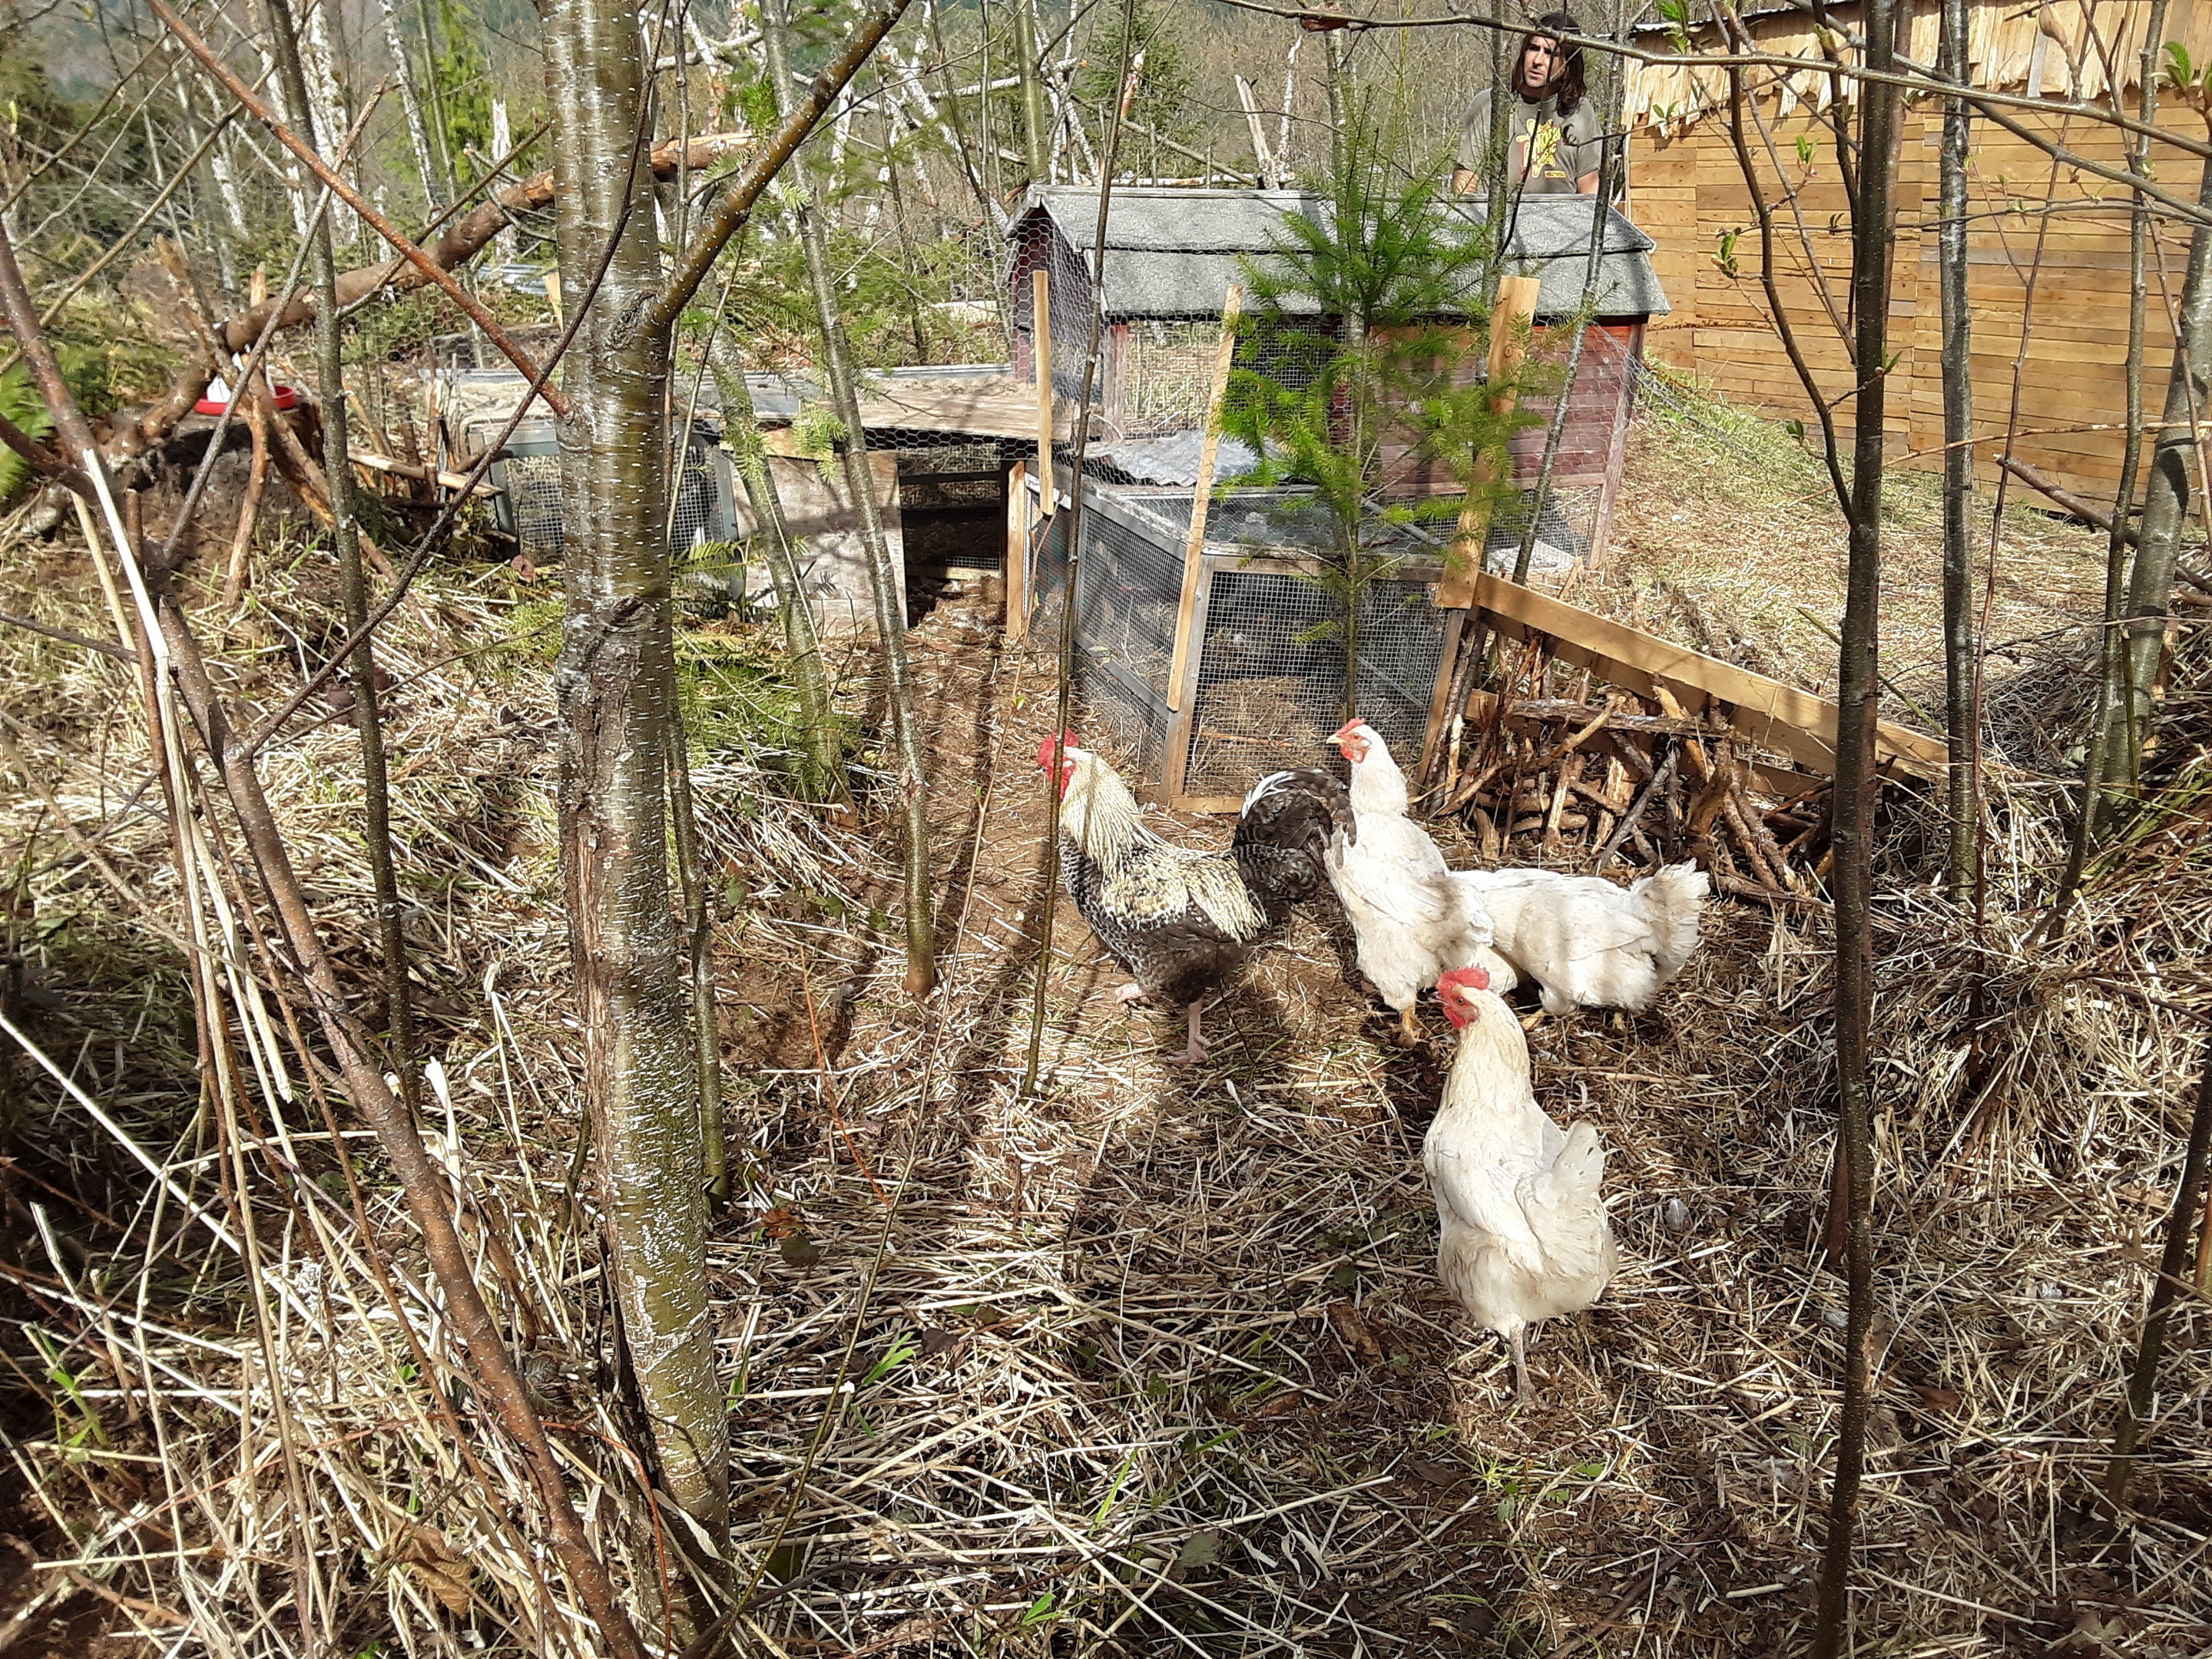 other-view-of-chicken-house-jpg.52742_Off-Grid homesteadin' wing'n it yeh_Alternative Housing_Squat the Planet_12:24 PM